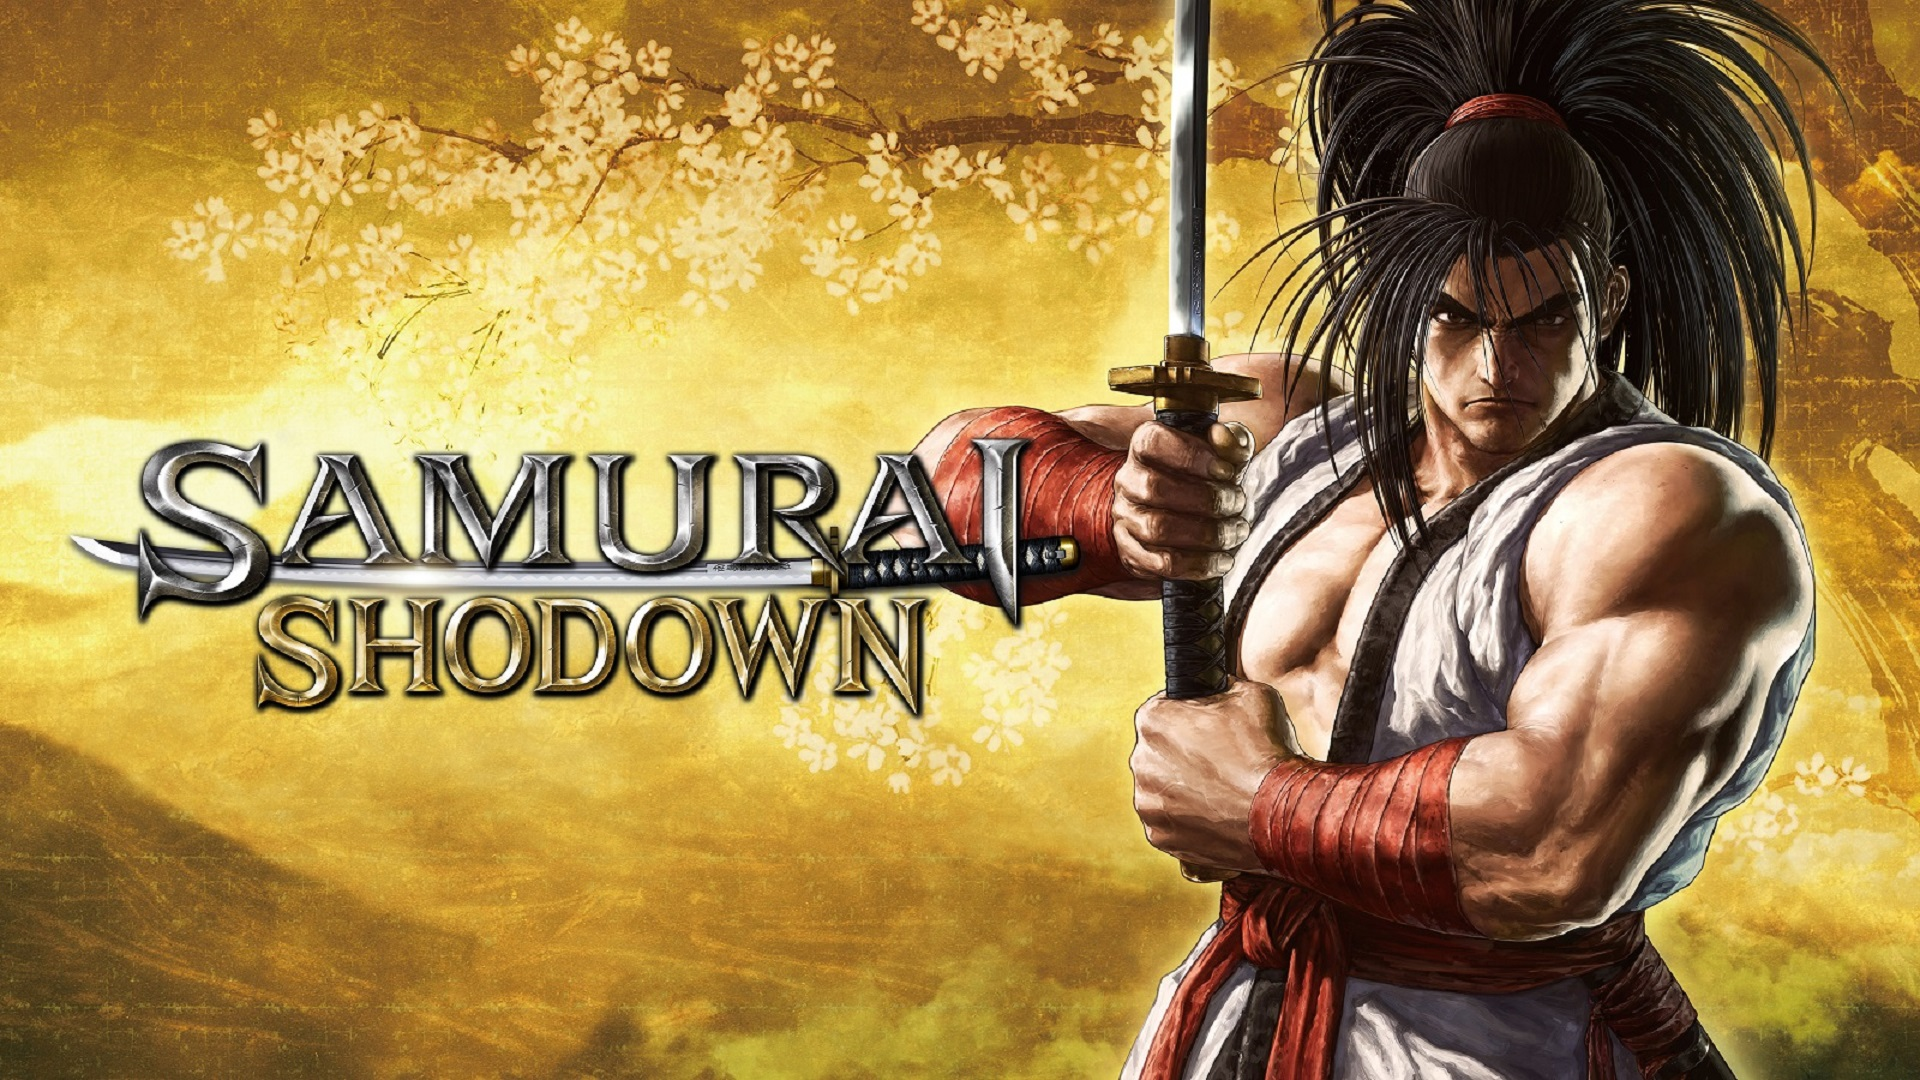 Samurai-Shodown-Key-Art-2020-Gaming-Cypher.jpg